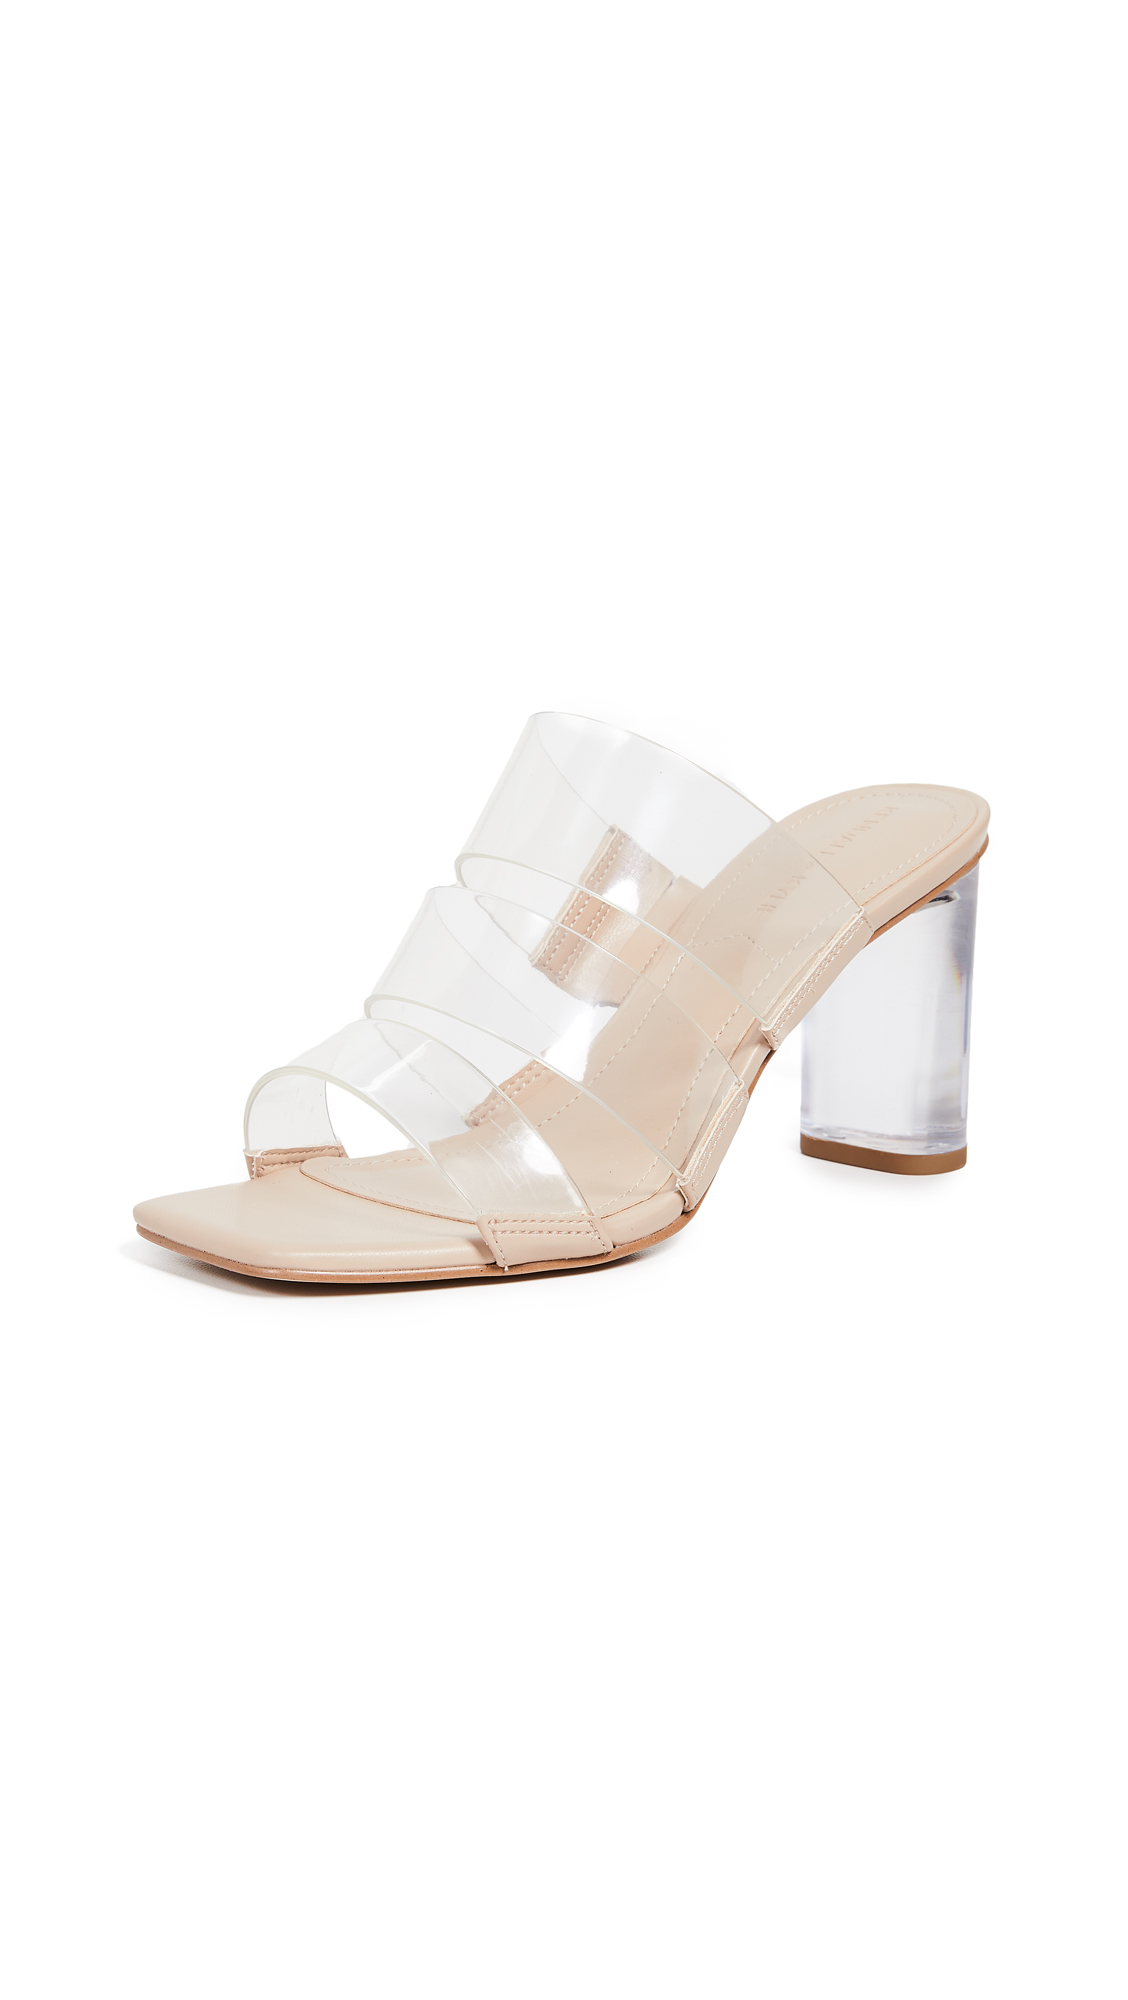 KENDALL + KYLIE Leila Slides - Clear/Nude